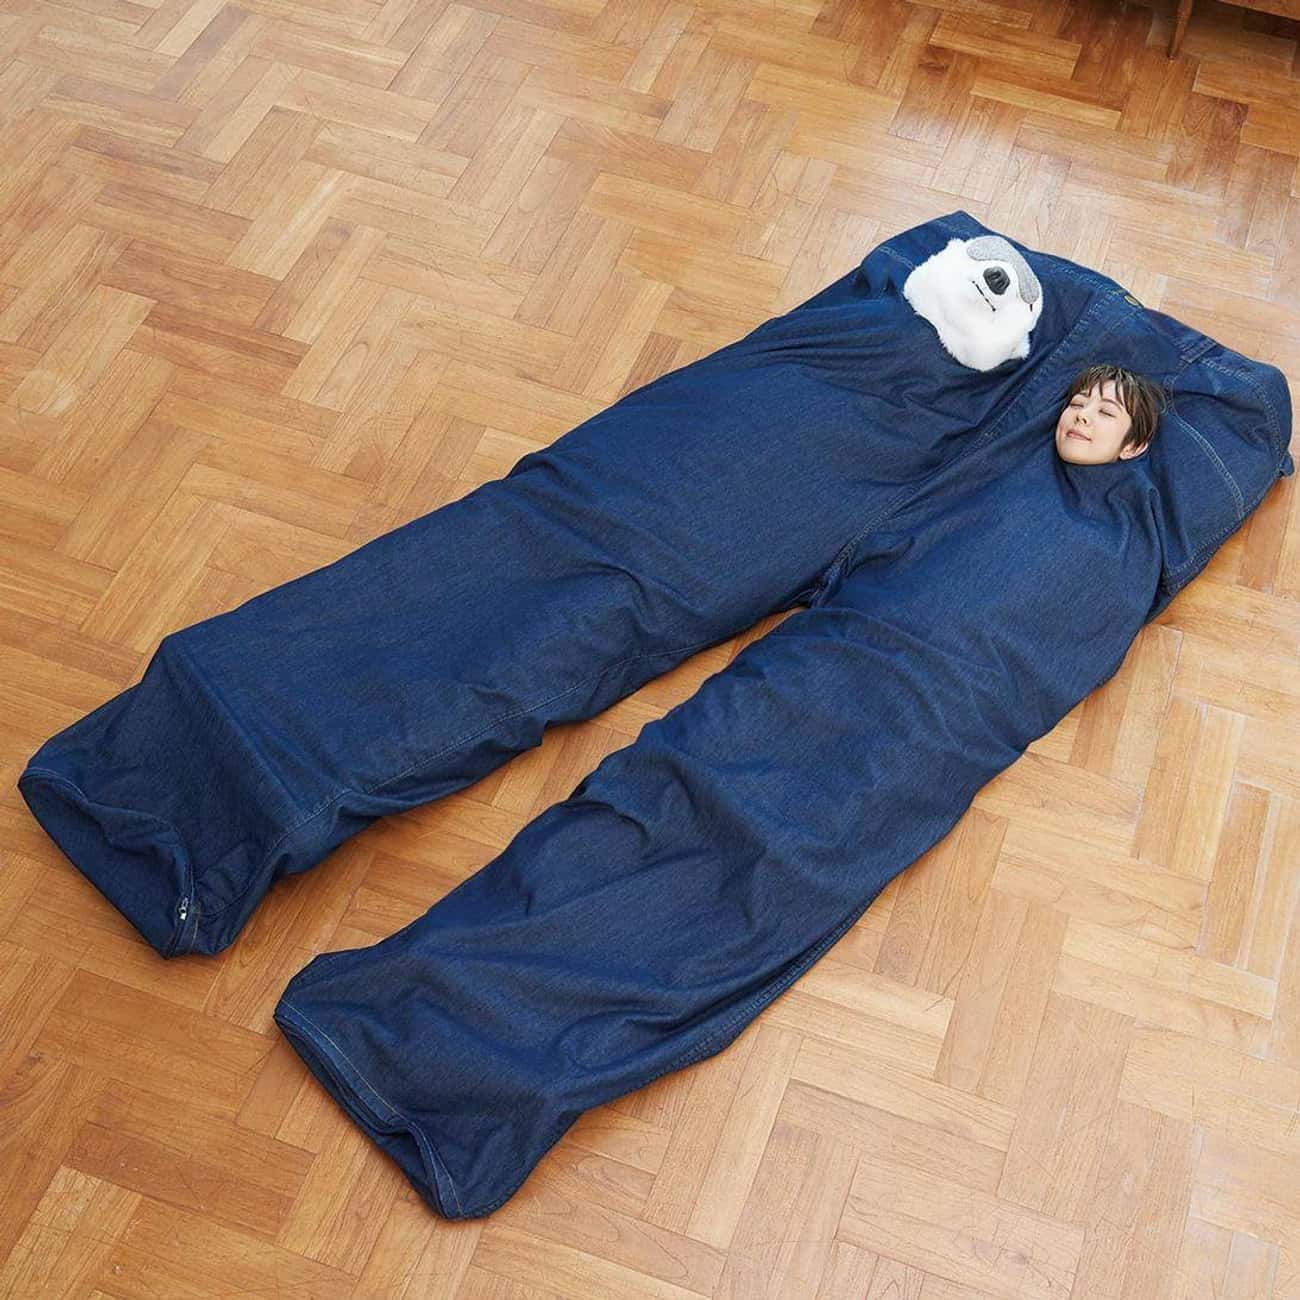 You Got Good Jeans is listed (or ranked) 4 on the list Japanese Sleeping Bags Will Confuse And Comfort You At The Same Time